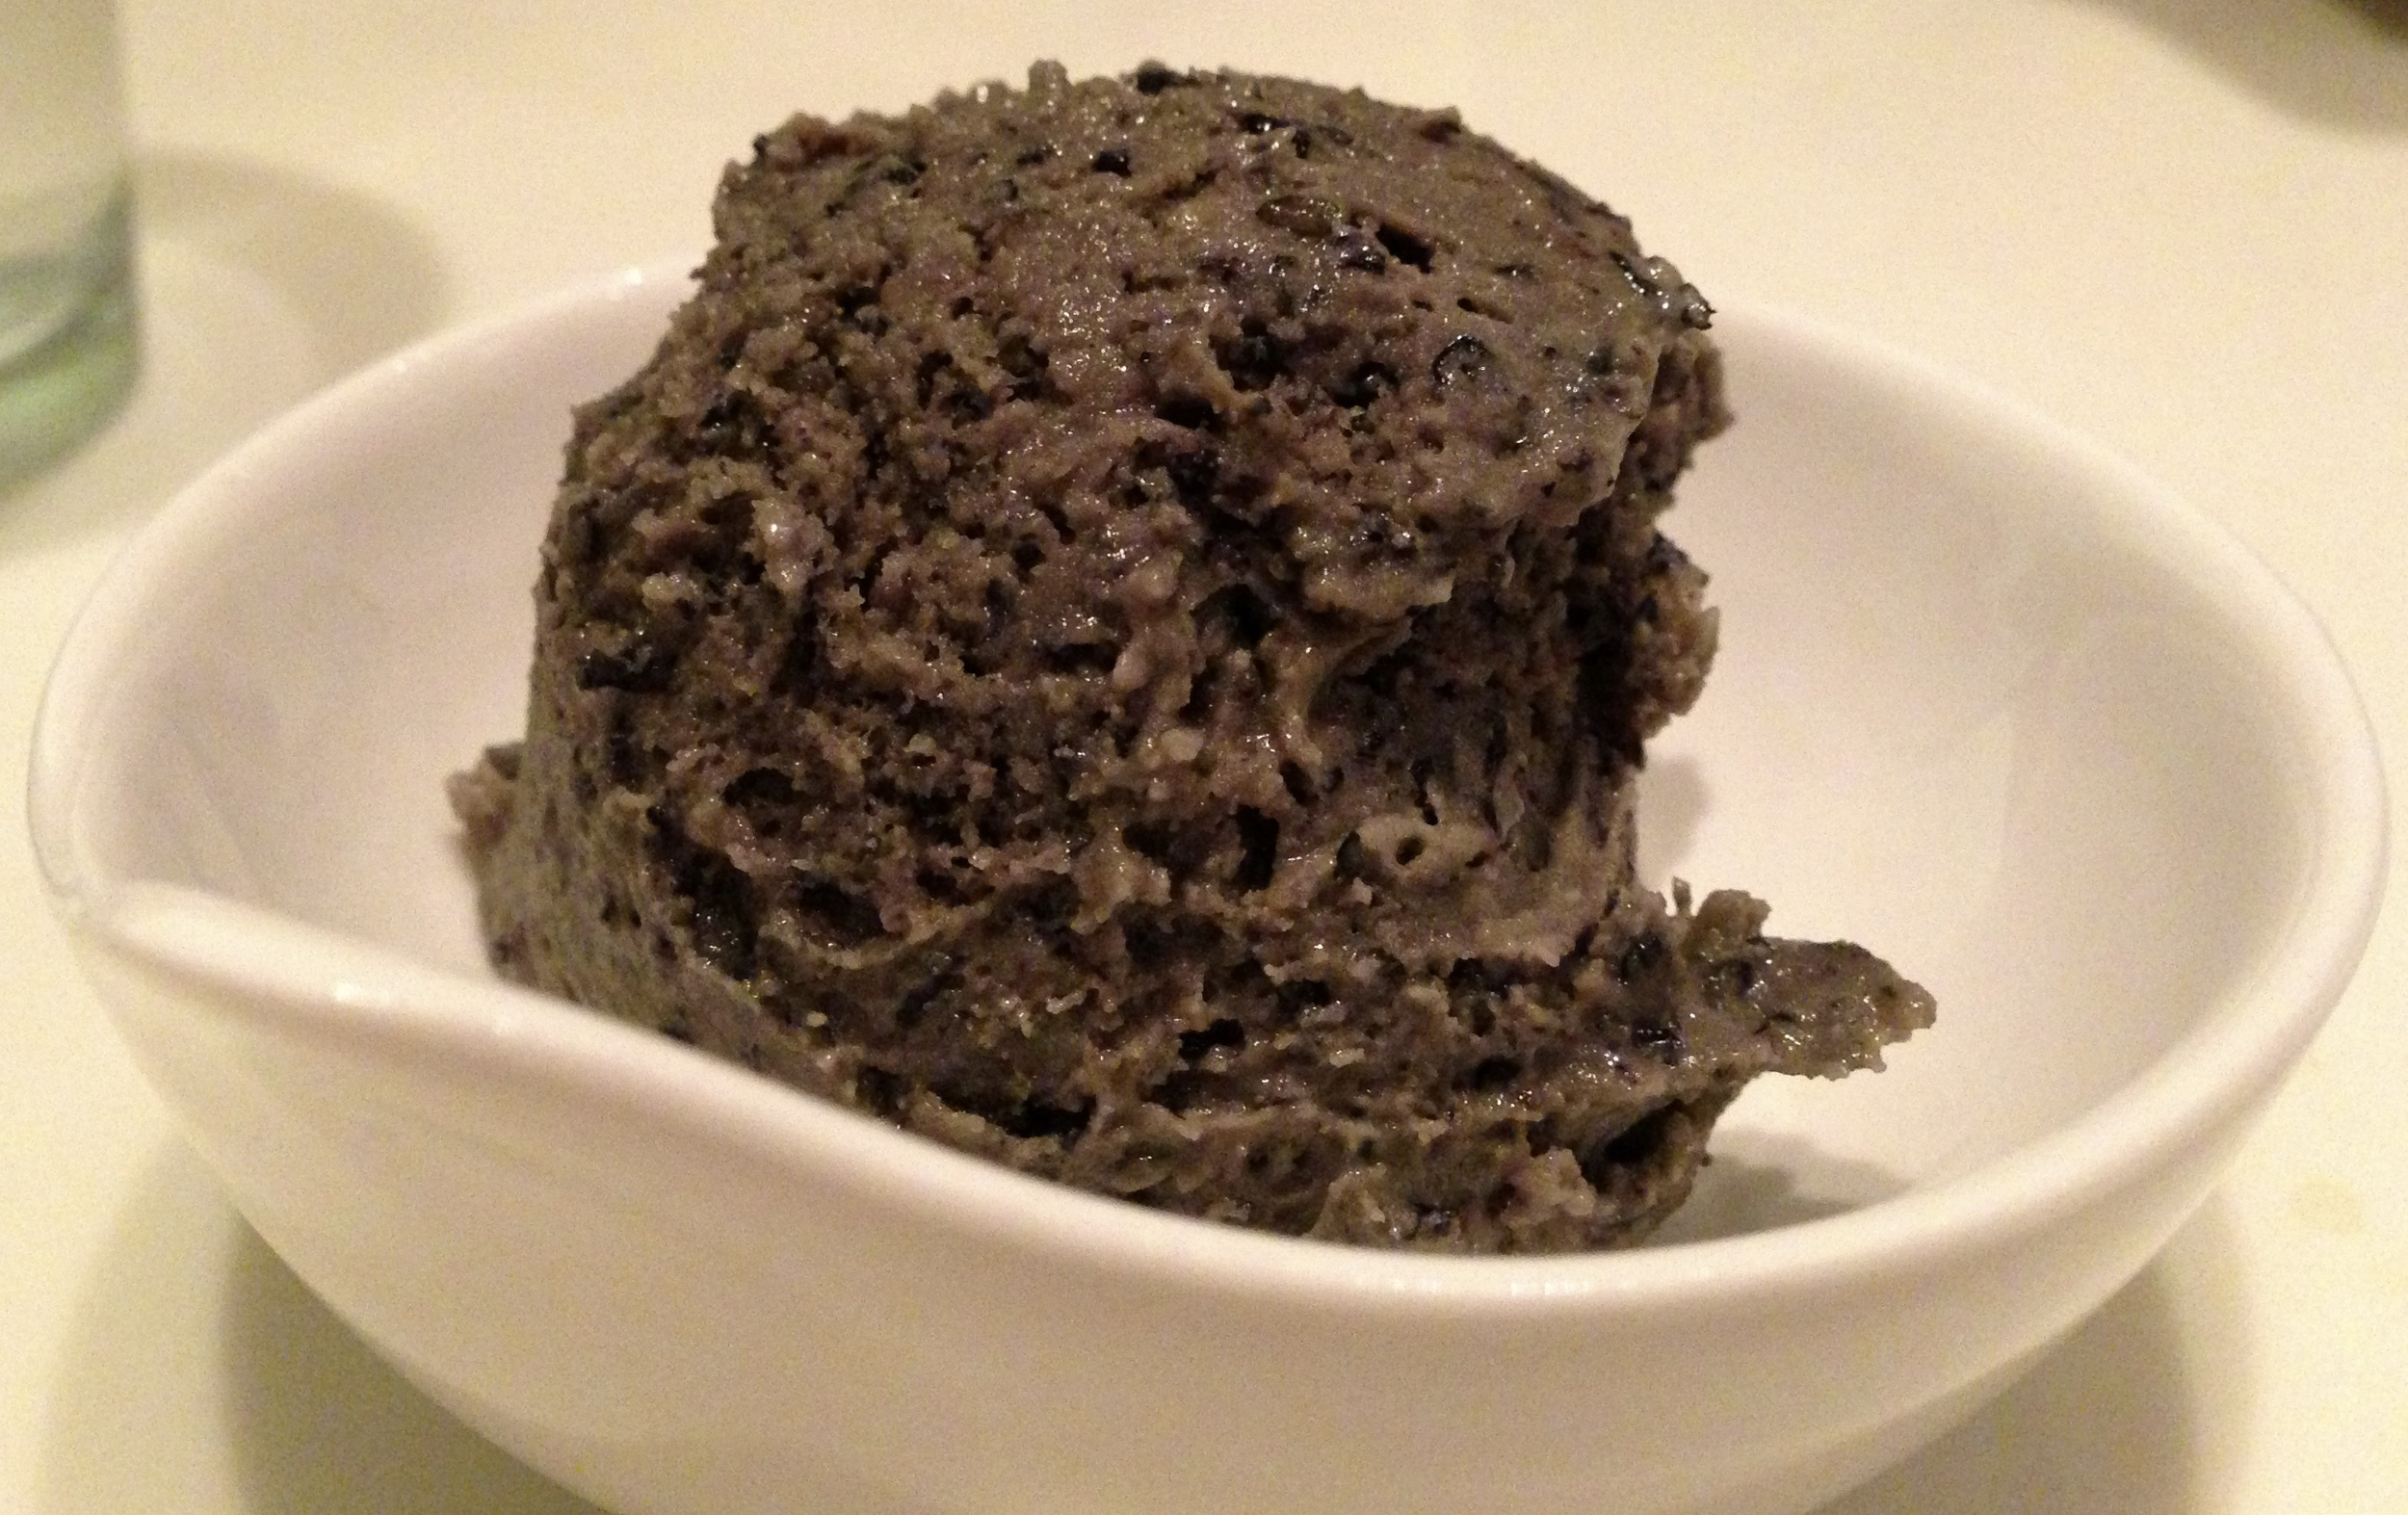 Figure 13. Black sesame ice cream